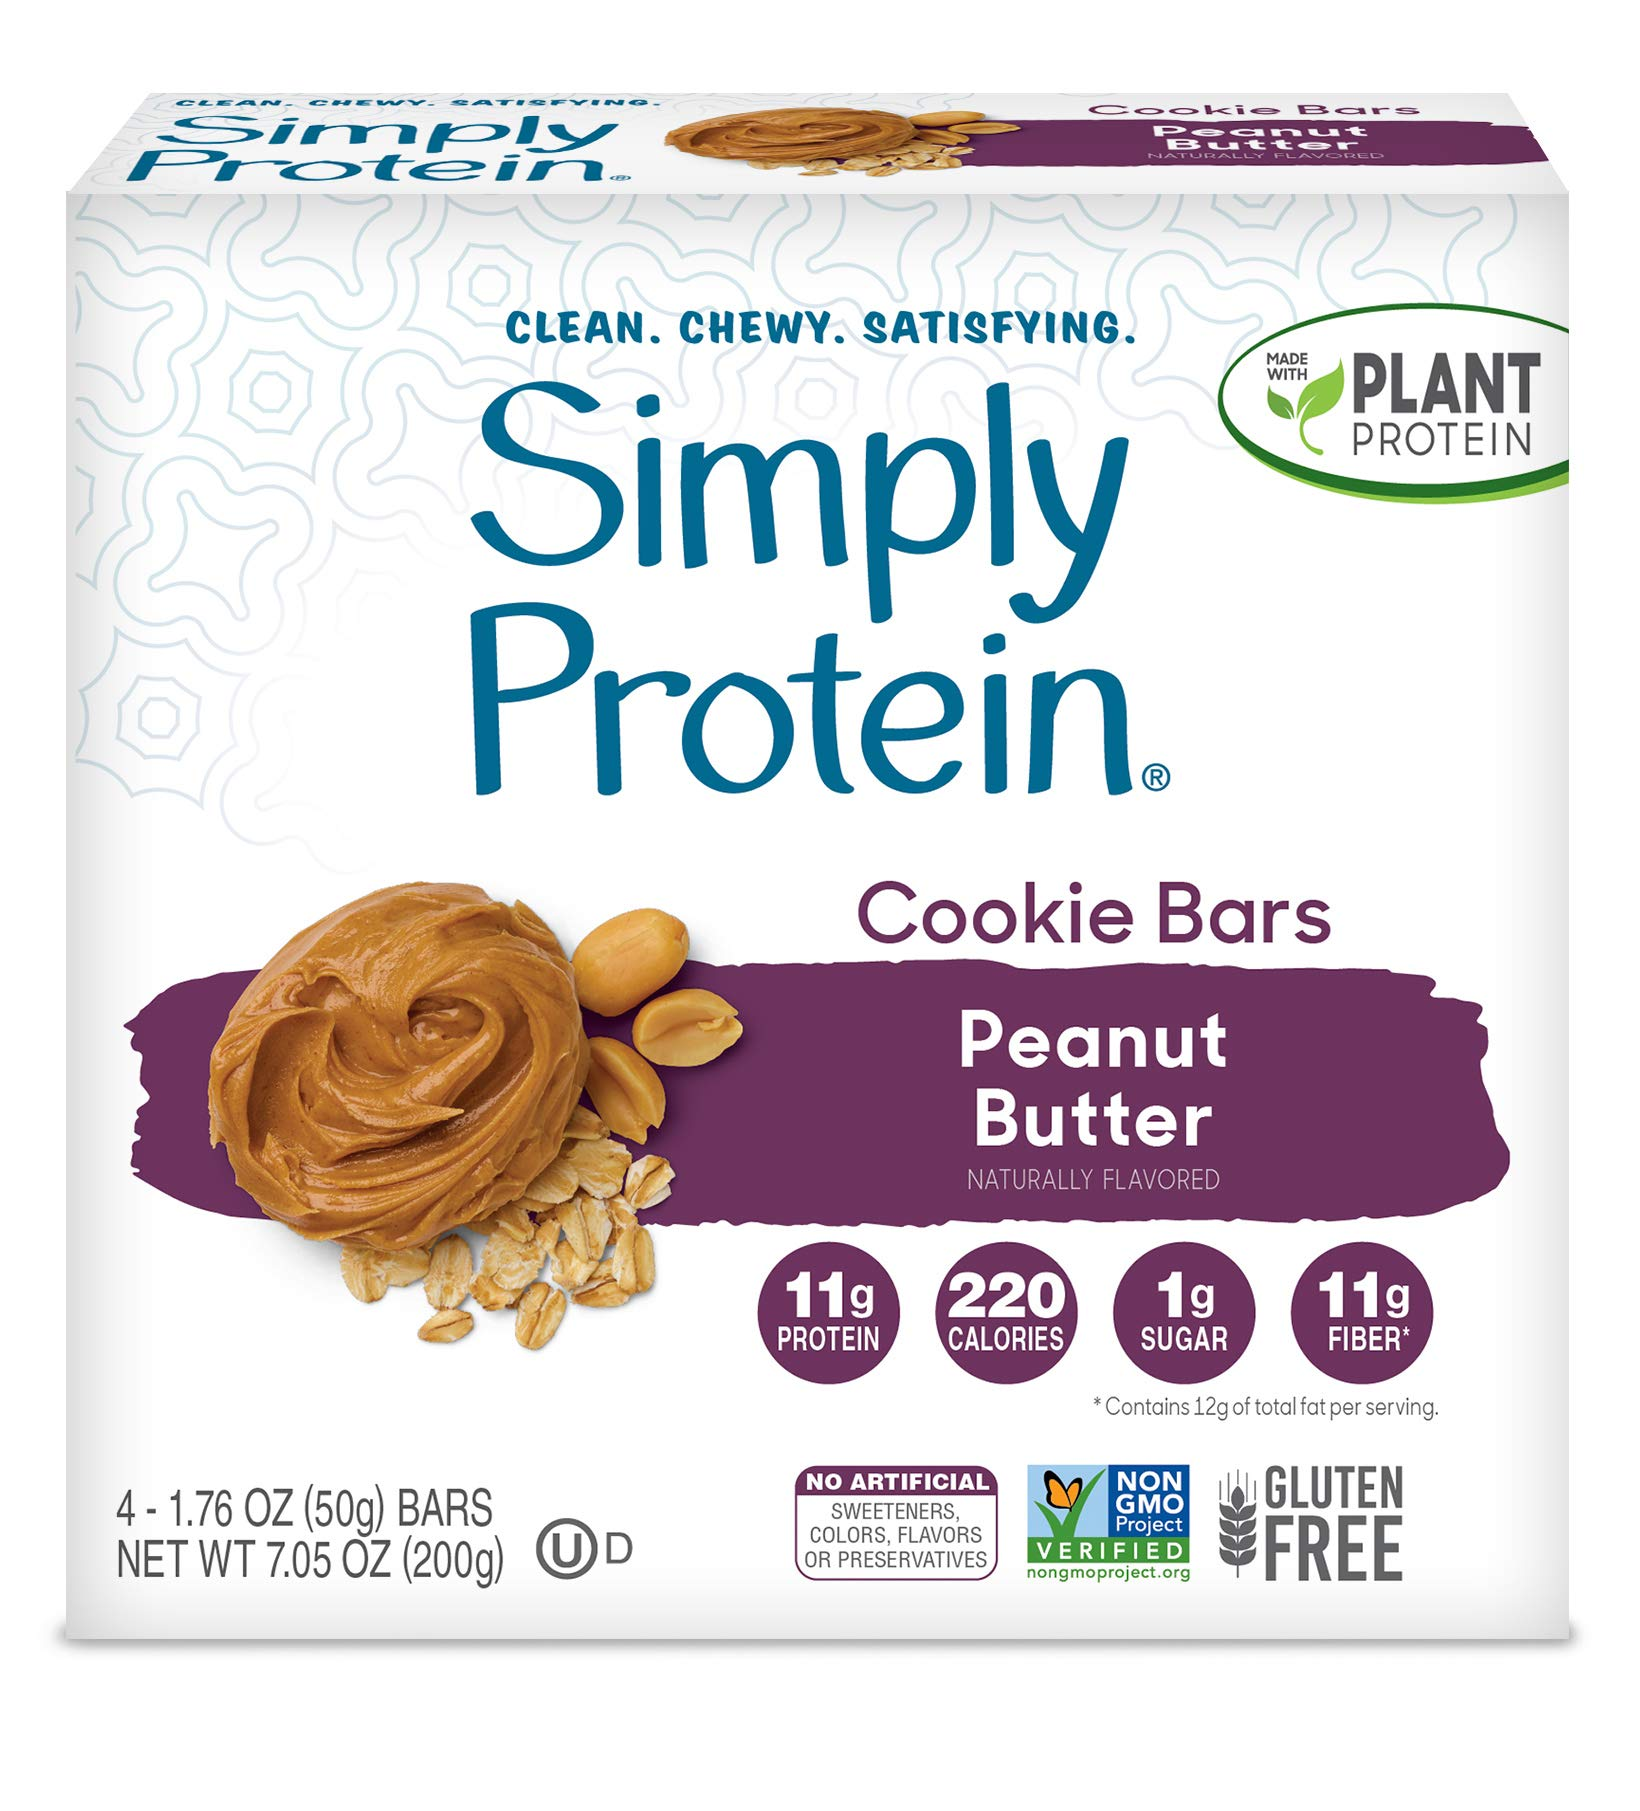 SimplyProtein Cookie Bars. Clean and Light Crispy Bars with Plant Based Protein. (Peanut Butter Cookie, 8 Pack)